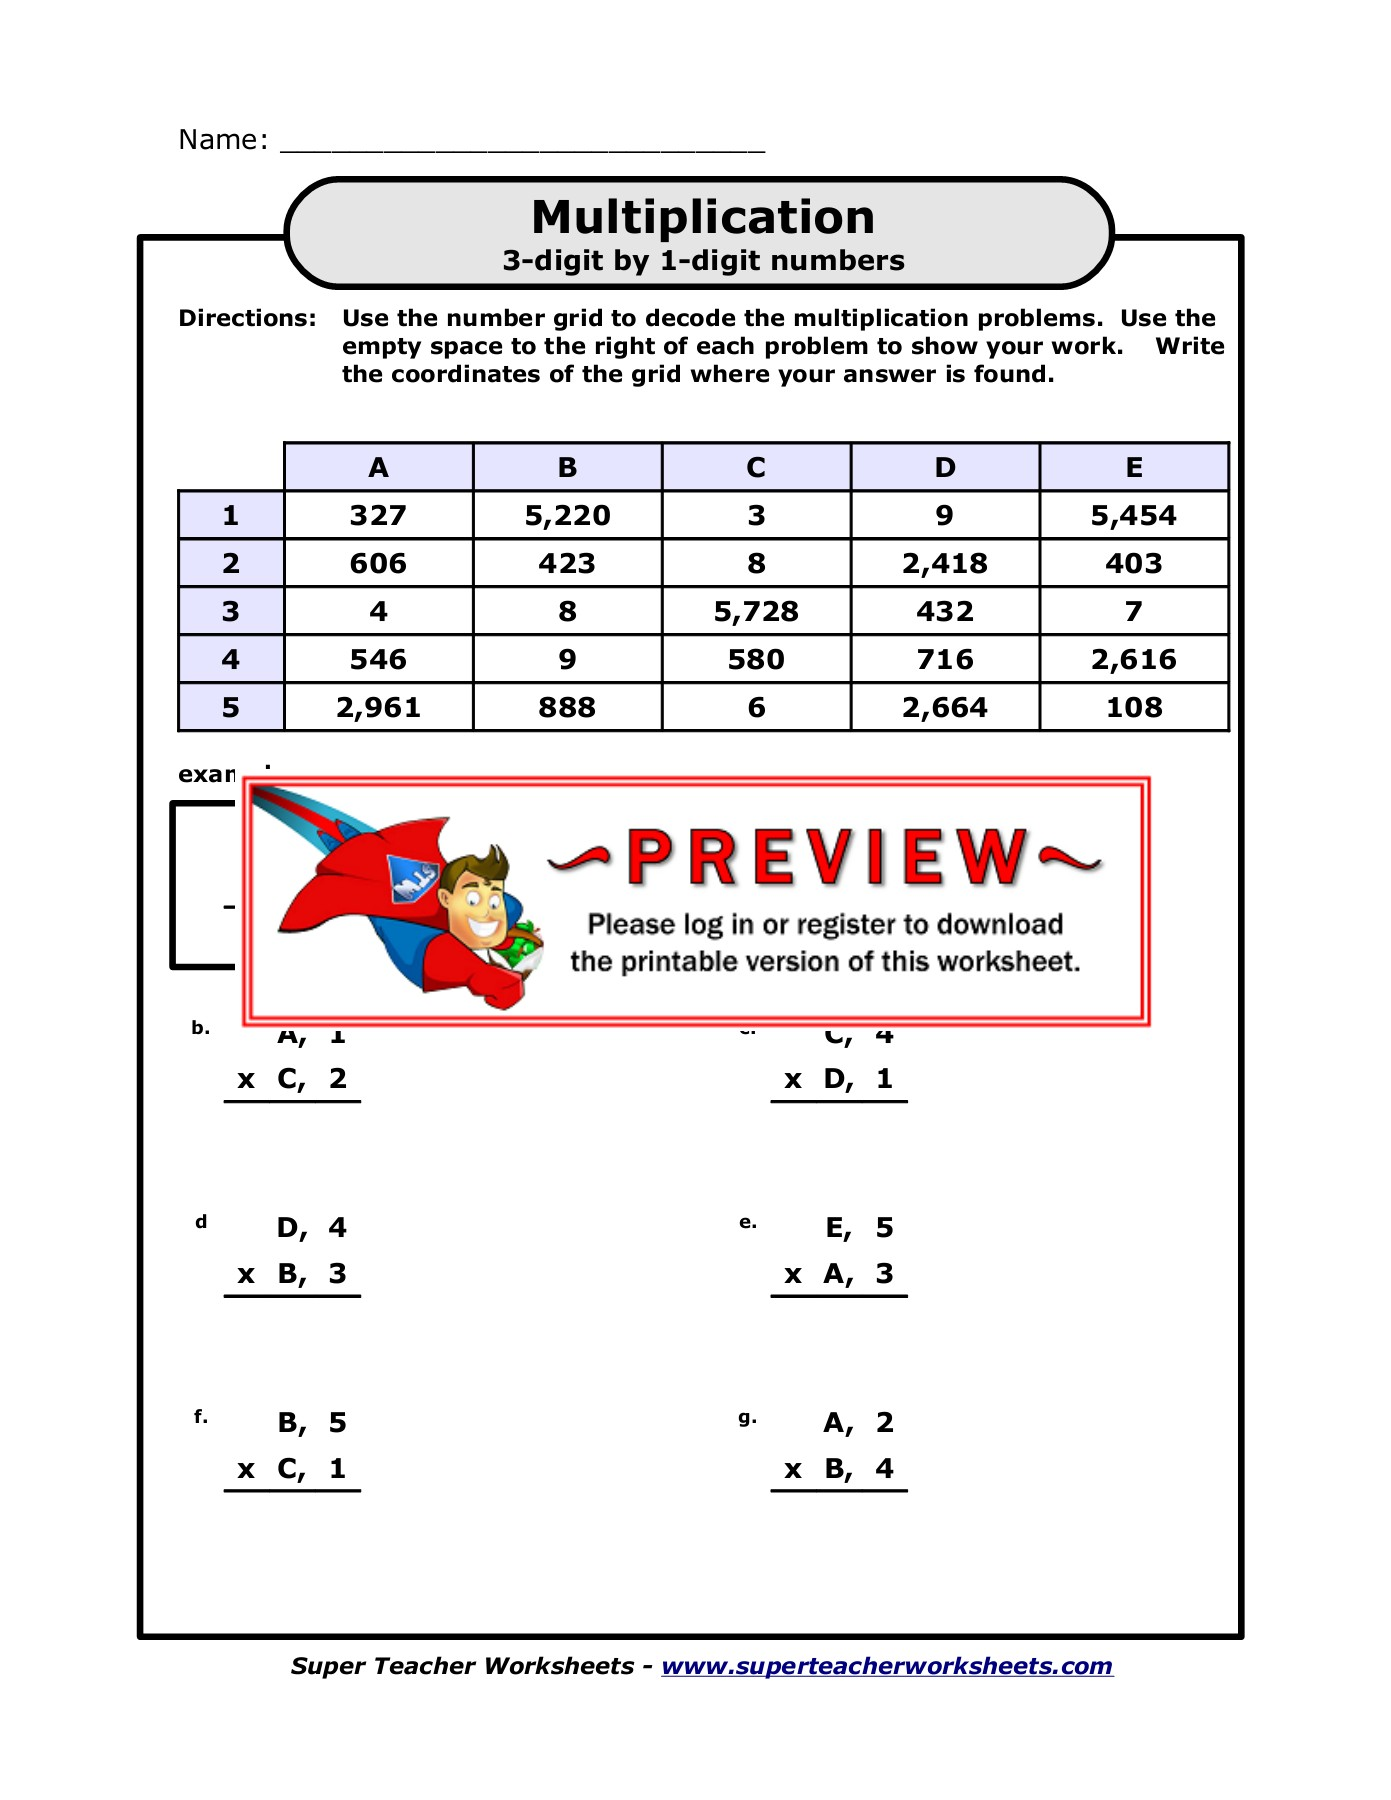 Multiplication Super Teacher Worksheets